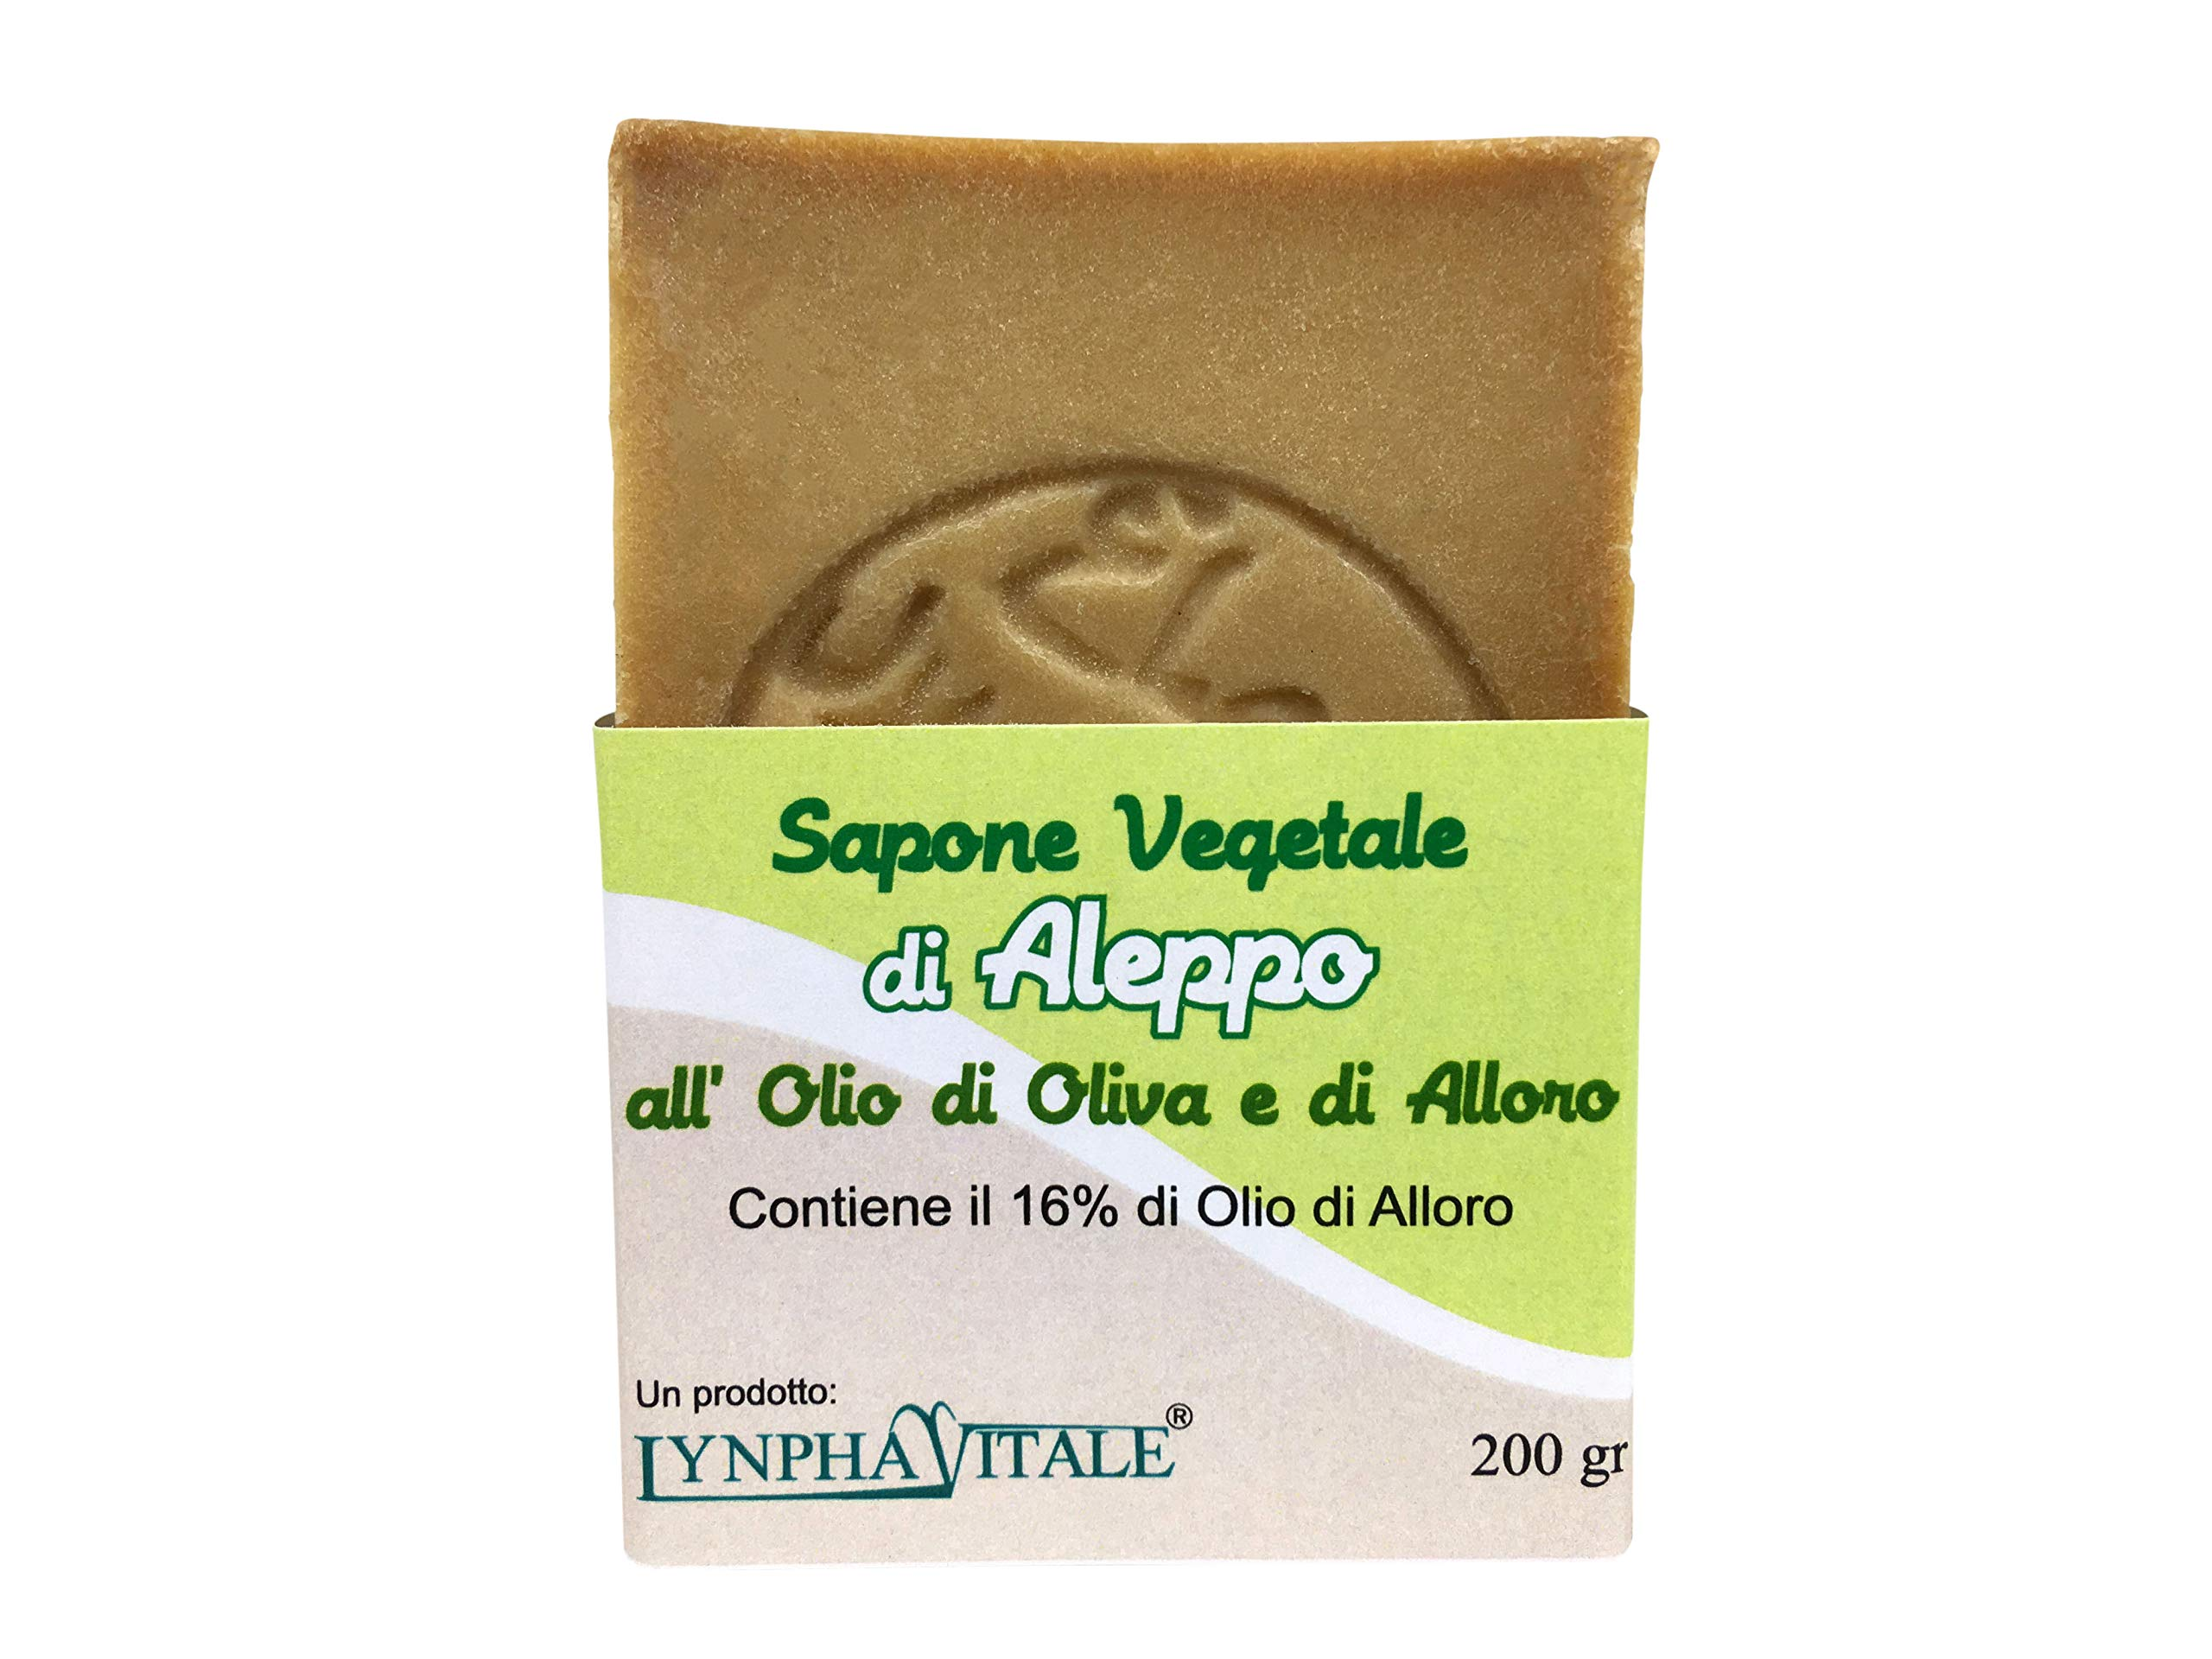 Handmade Aleppo soap Bar - with Olive Oil and 16% of Laurel Oil – Original Recipe - Traditional, Pure and Organic Soap - Suitable for Sensitive Skins – Ideal as Body Soap and Shampoo